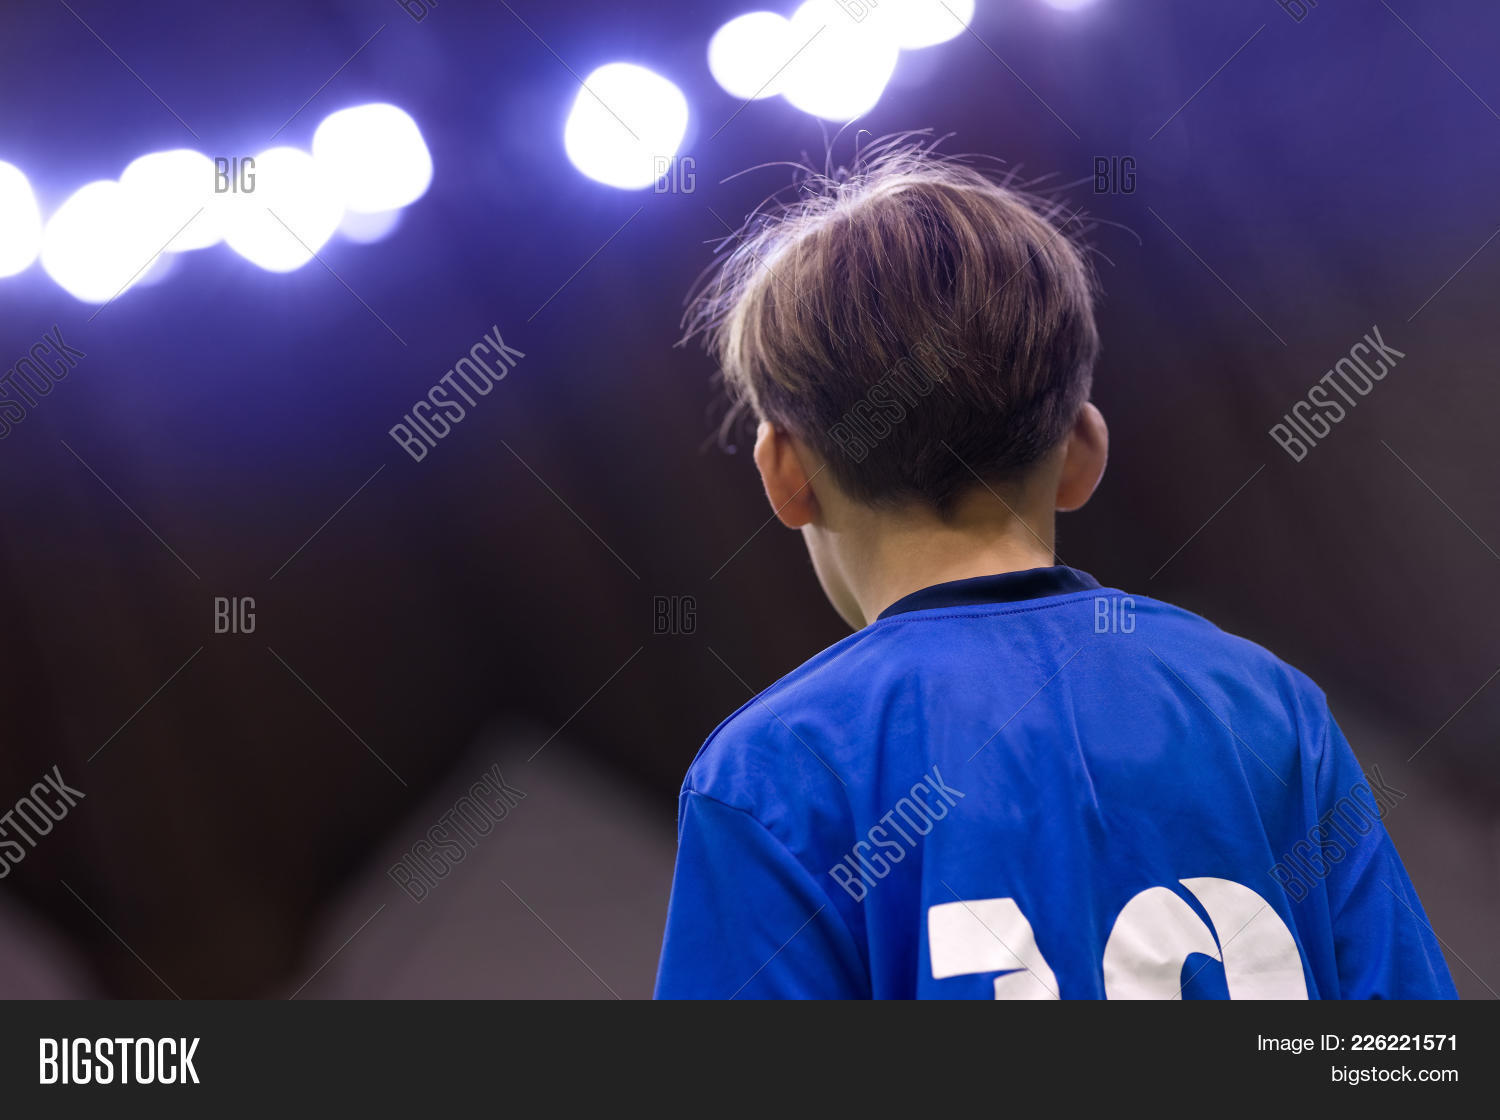 arena,background,beautiful,blue,boy,caucasian,child,childhood,concept,cute,education,expression,football,head,healthy,jersey,junior,jupiter,kid,lifestyle,lights,little,male,one,person,physical,play,player,portrait,pose,posing,pretty,profile,queue,satisfaction,school,shirt,single,small,soccer,sport,sporting,sportive,sportswear,sporty,stadium,standing,white,young,youth